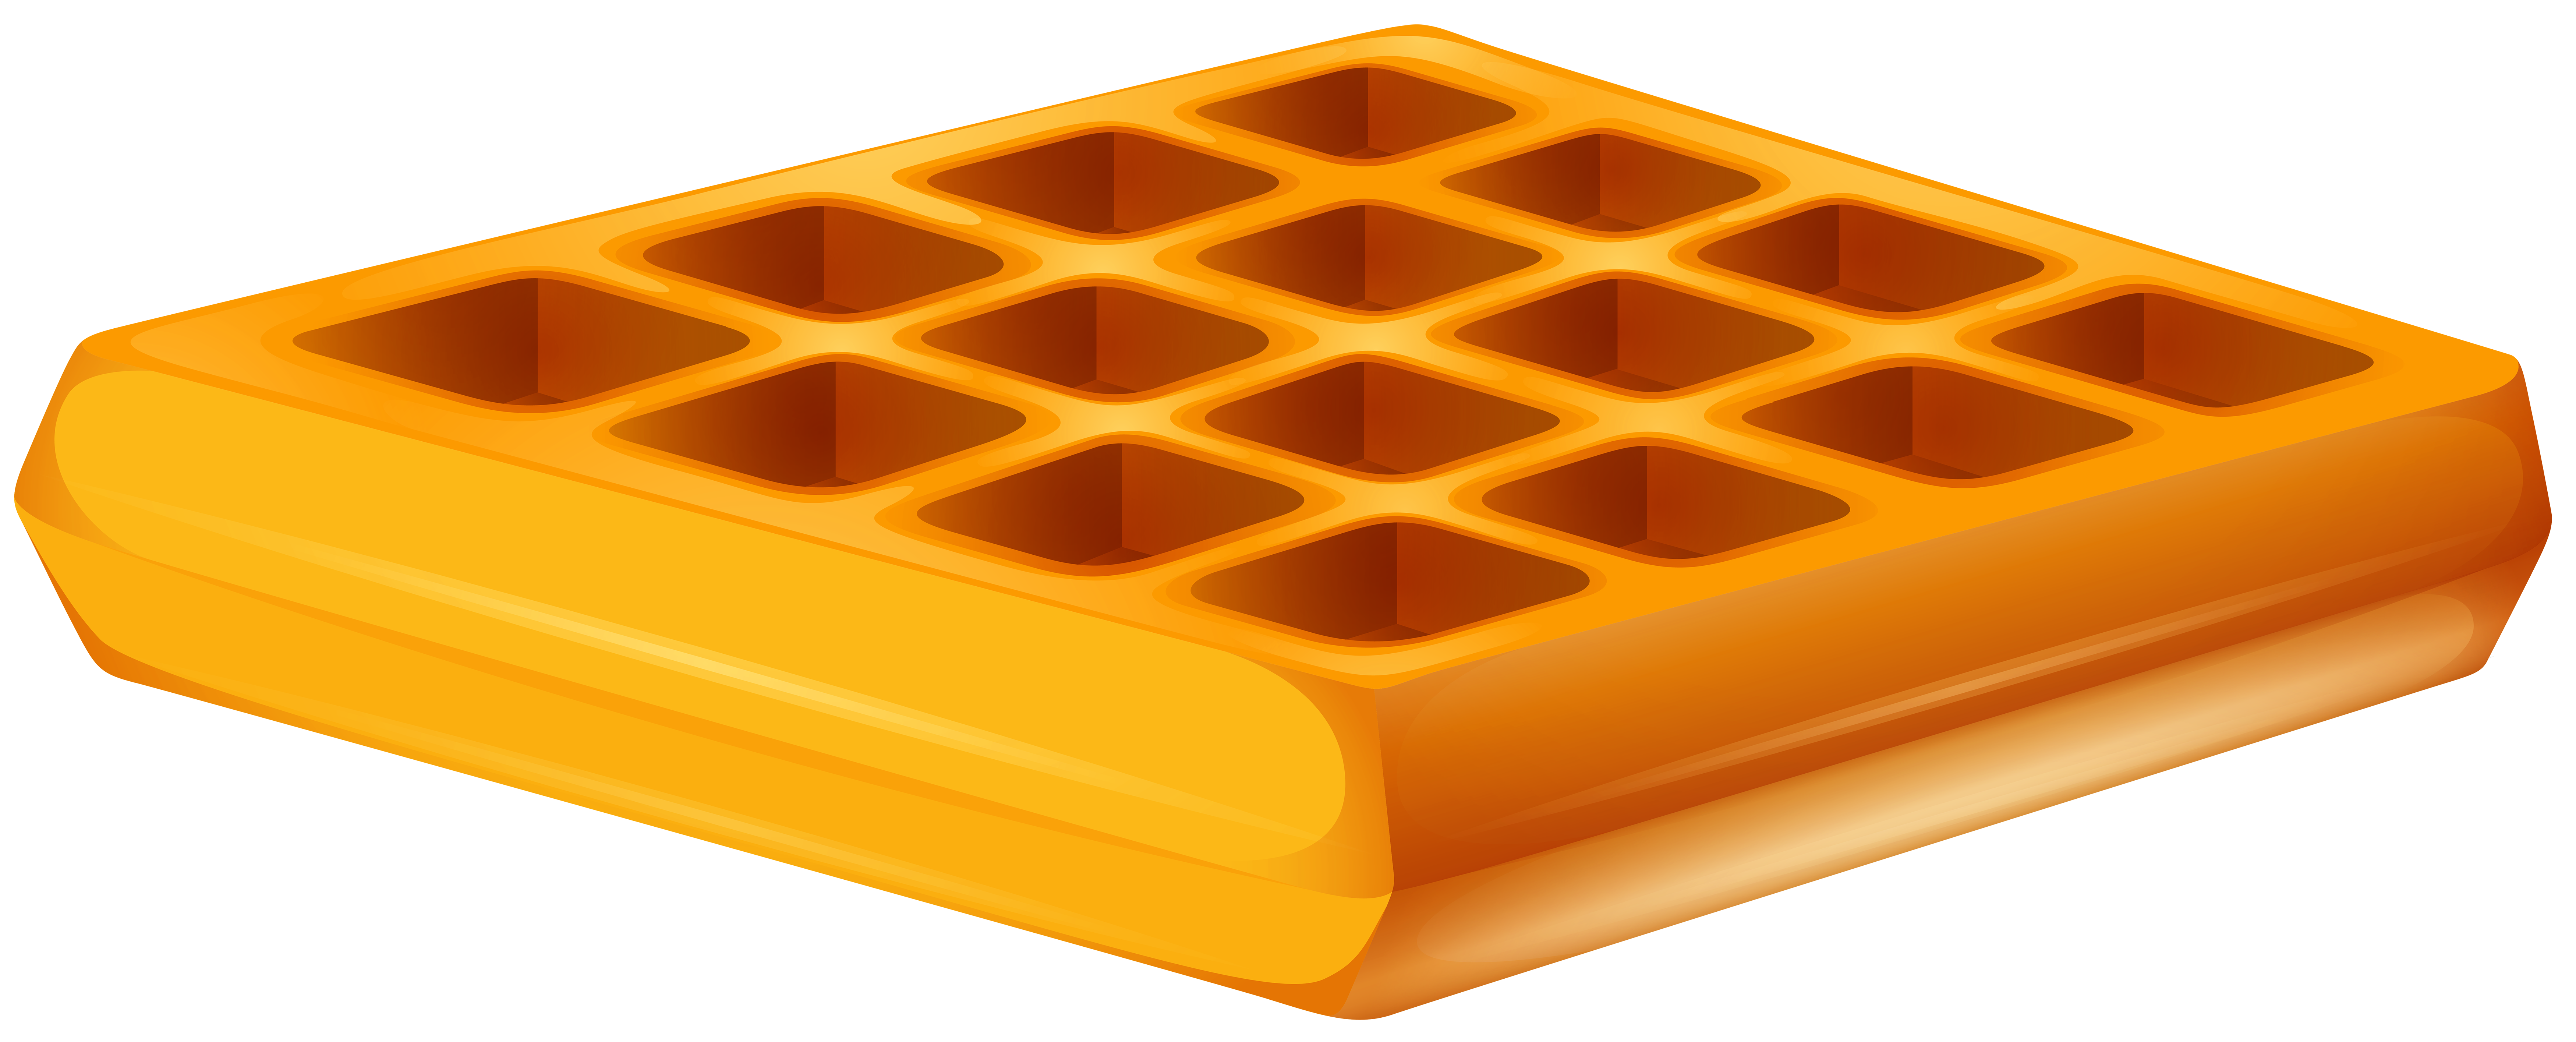 waffle clipart clipground #29308